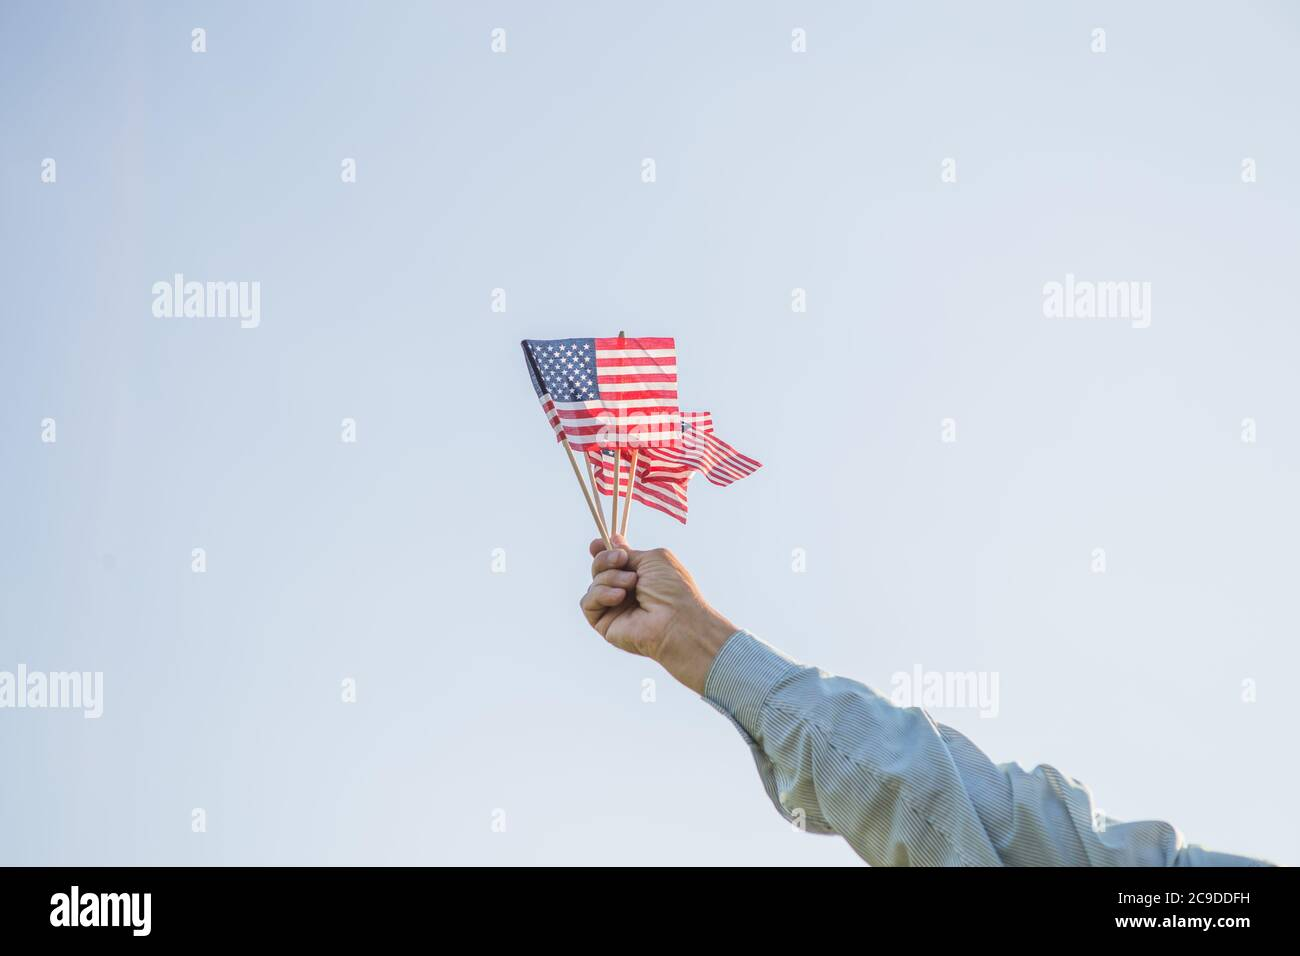 Patriotic senior man celebrates usa independence day on 4th of July with a national flag in his hands. Constitution and Citizenship Day. National Gran Stock Photo